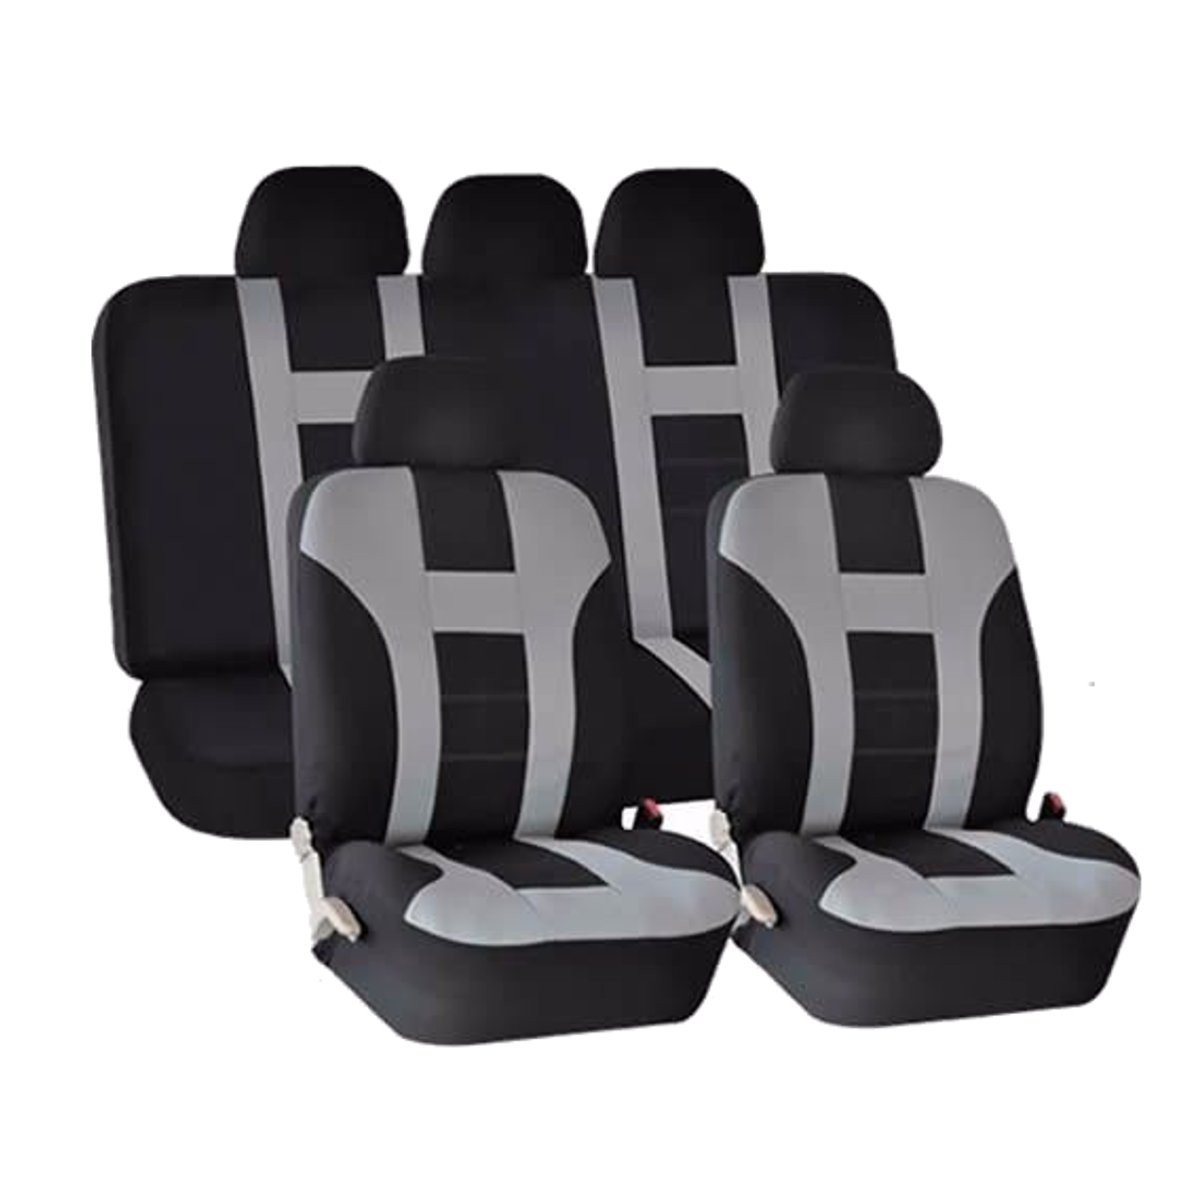 universal car seat covers front rear protectors 9 piece set washable grey black alex nld. Black Bedroom Furniture Sets. Home Design Ideas